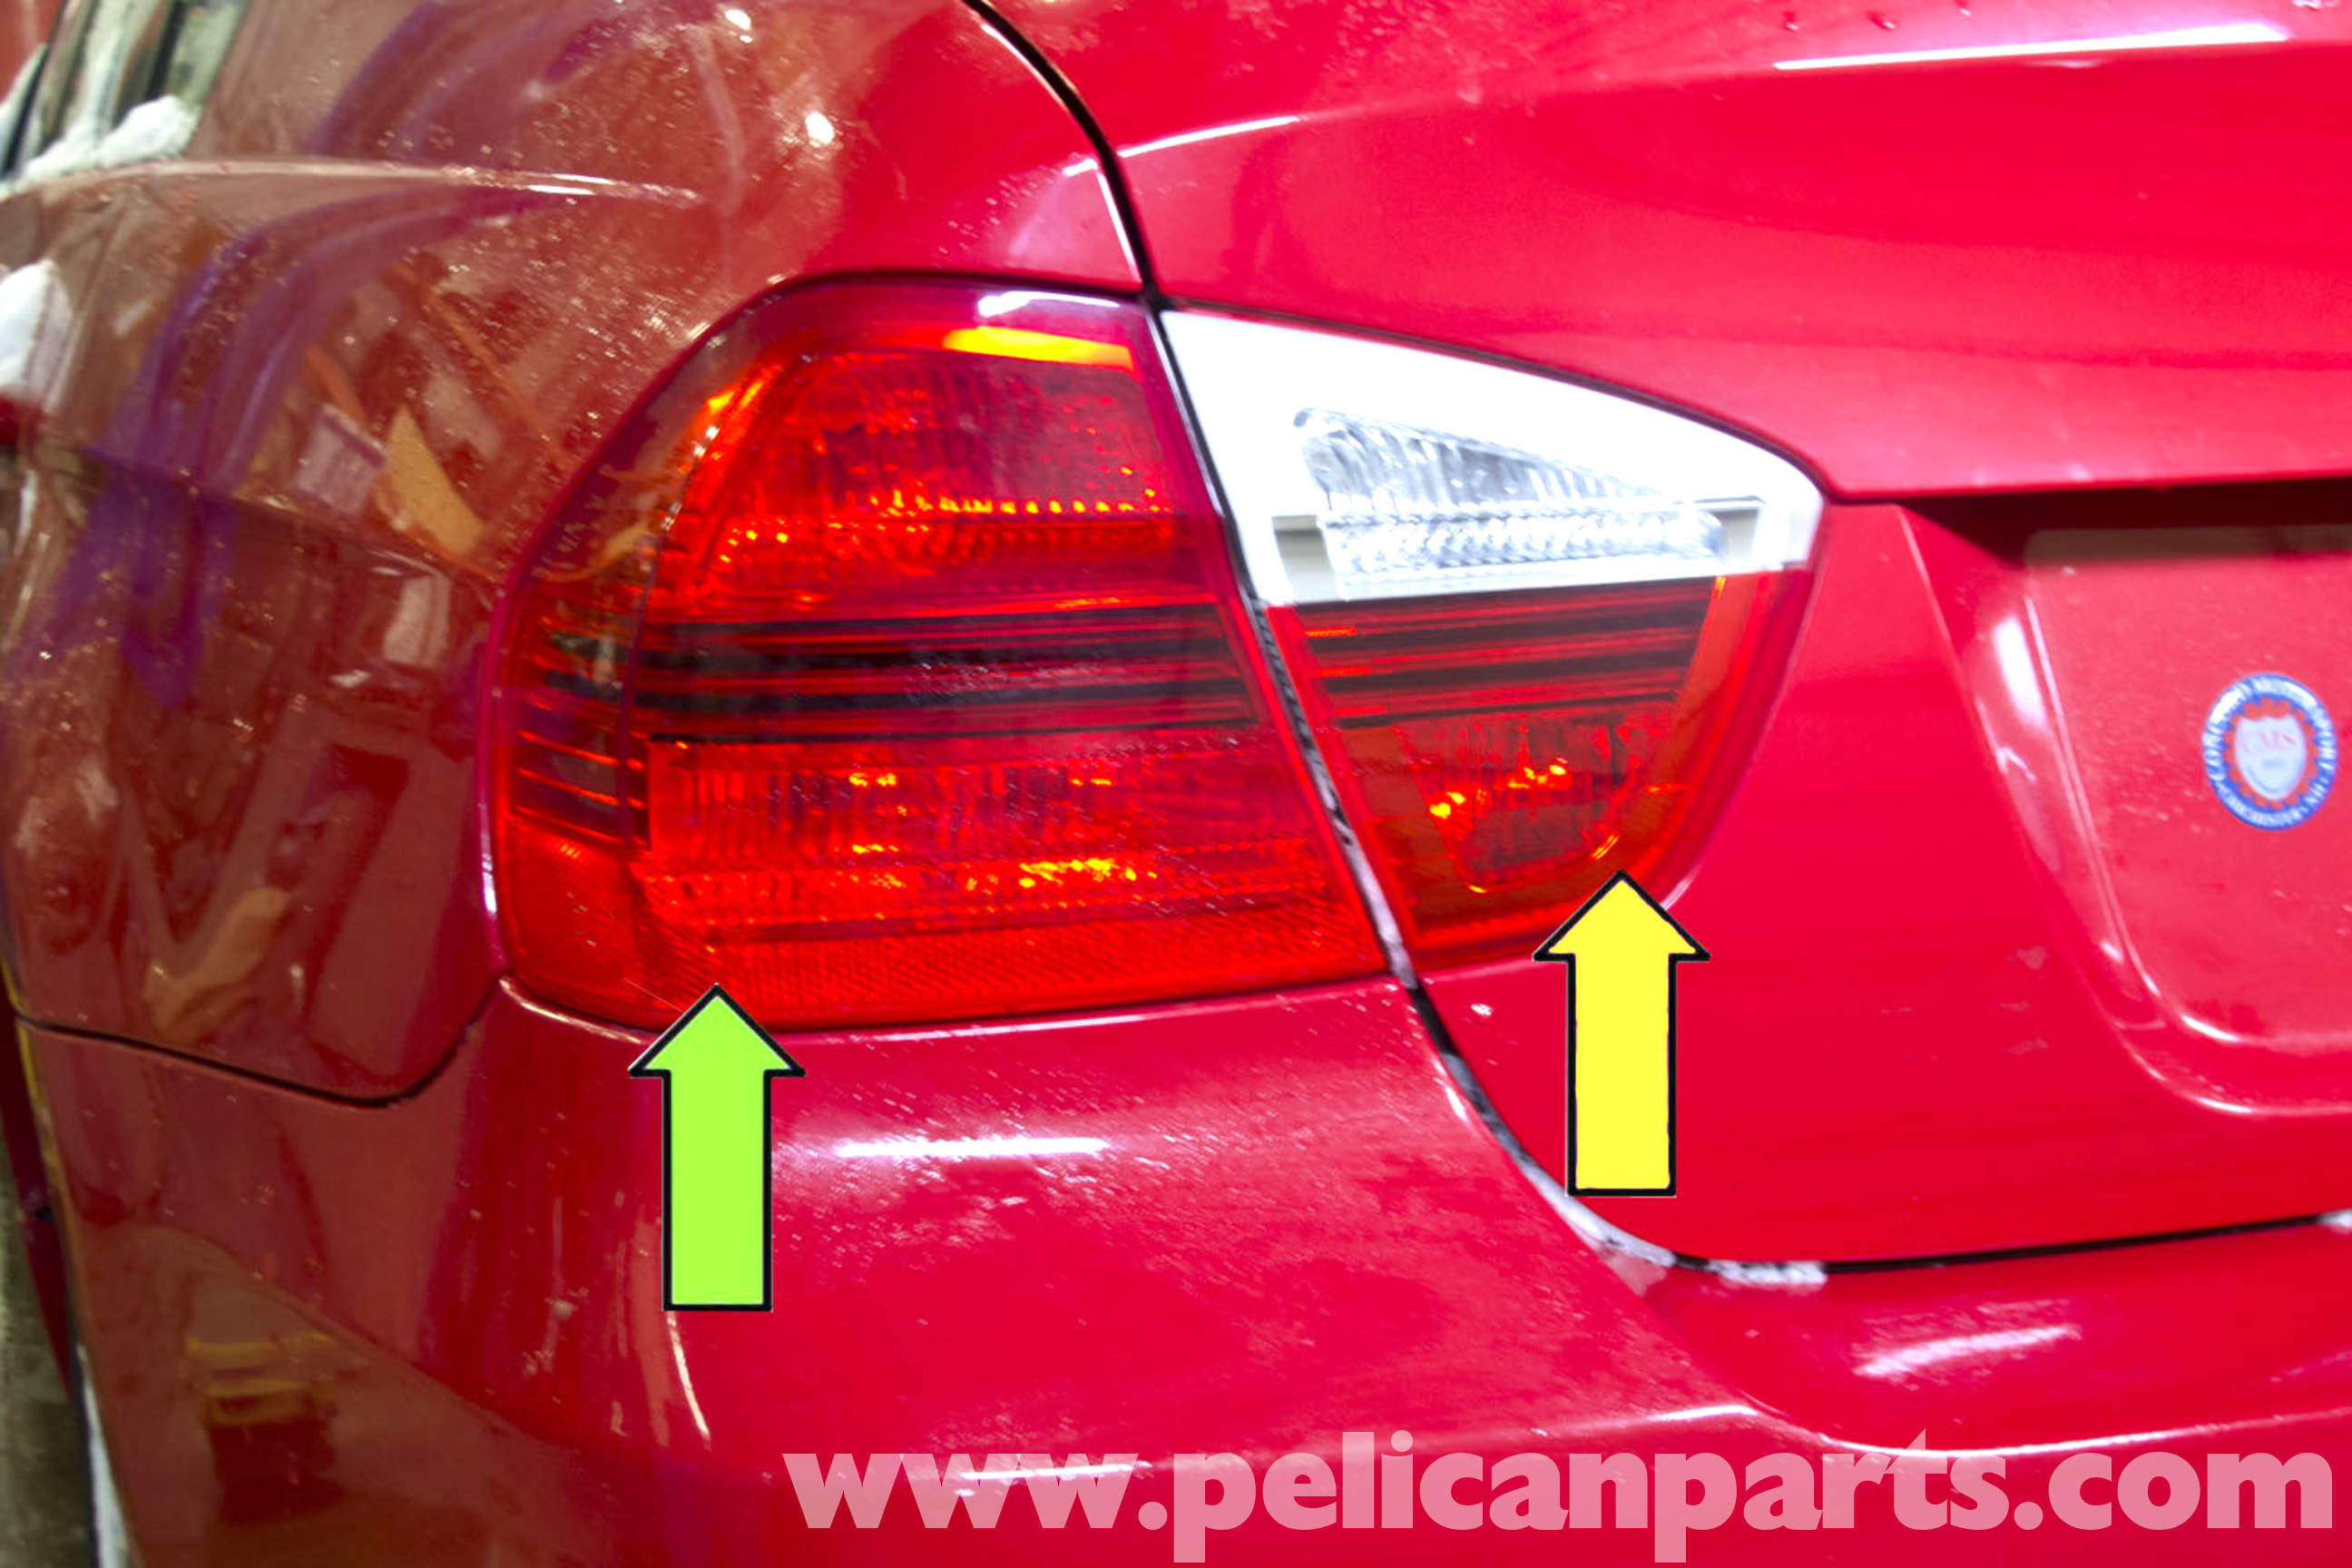 BMW E90 Tail Light Replacement E91 E92 E93 Pelican Parts DIY